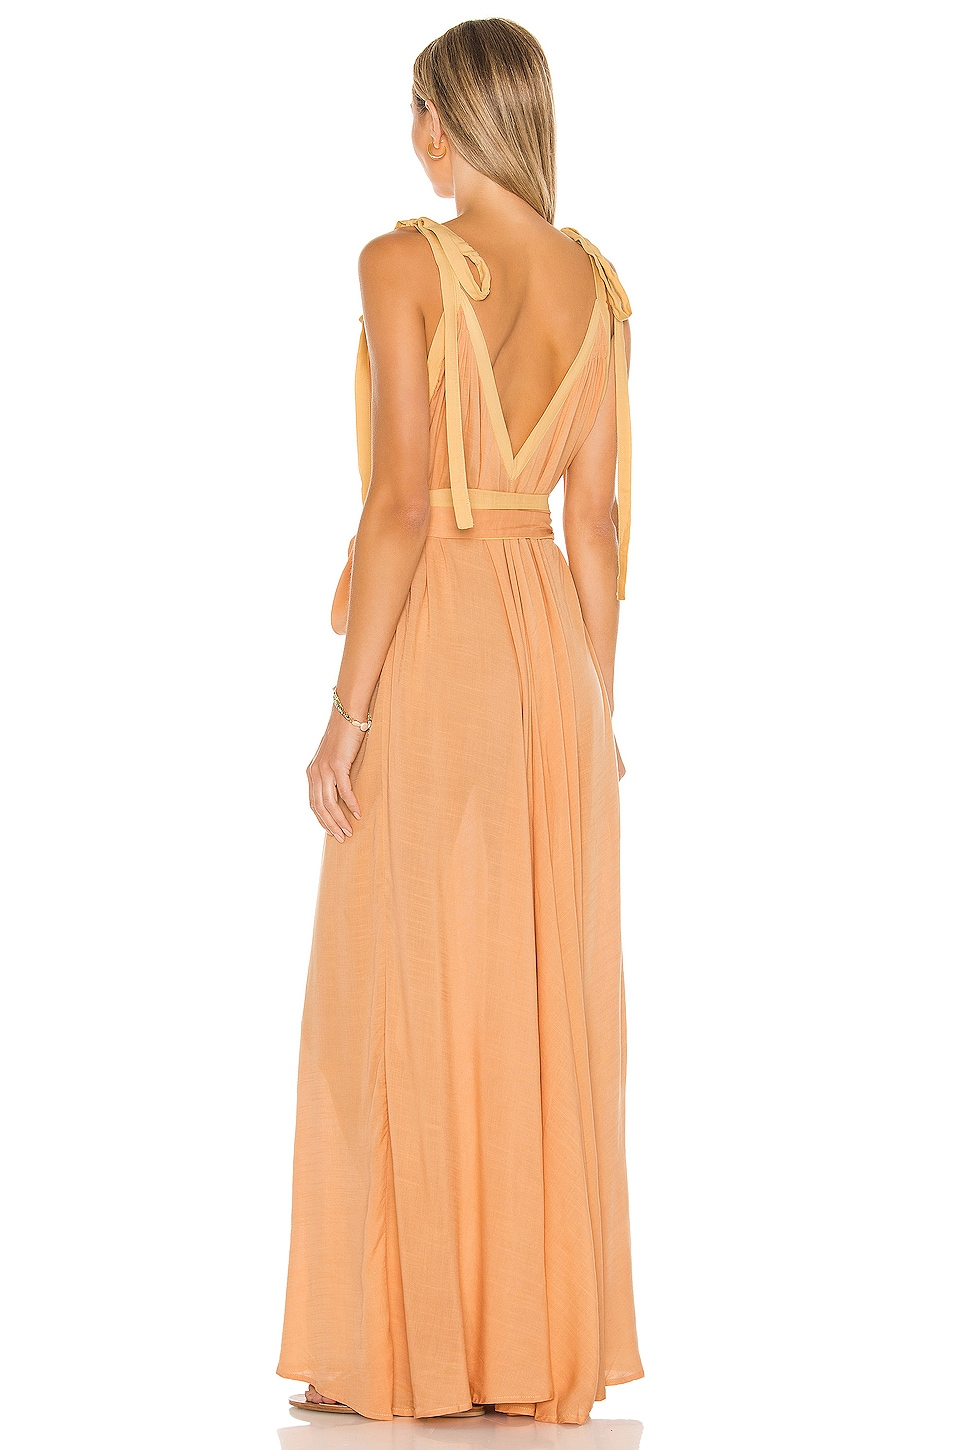 Vivian A-line Modern Goddess Maxi Dress, view 3, click to view large image.